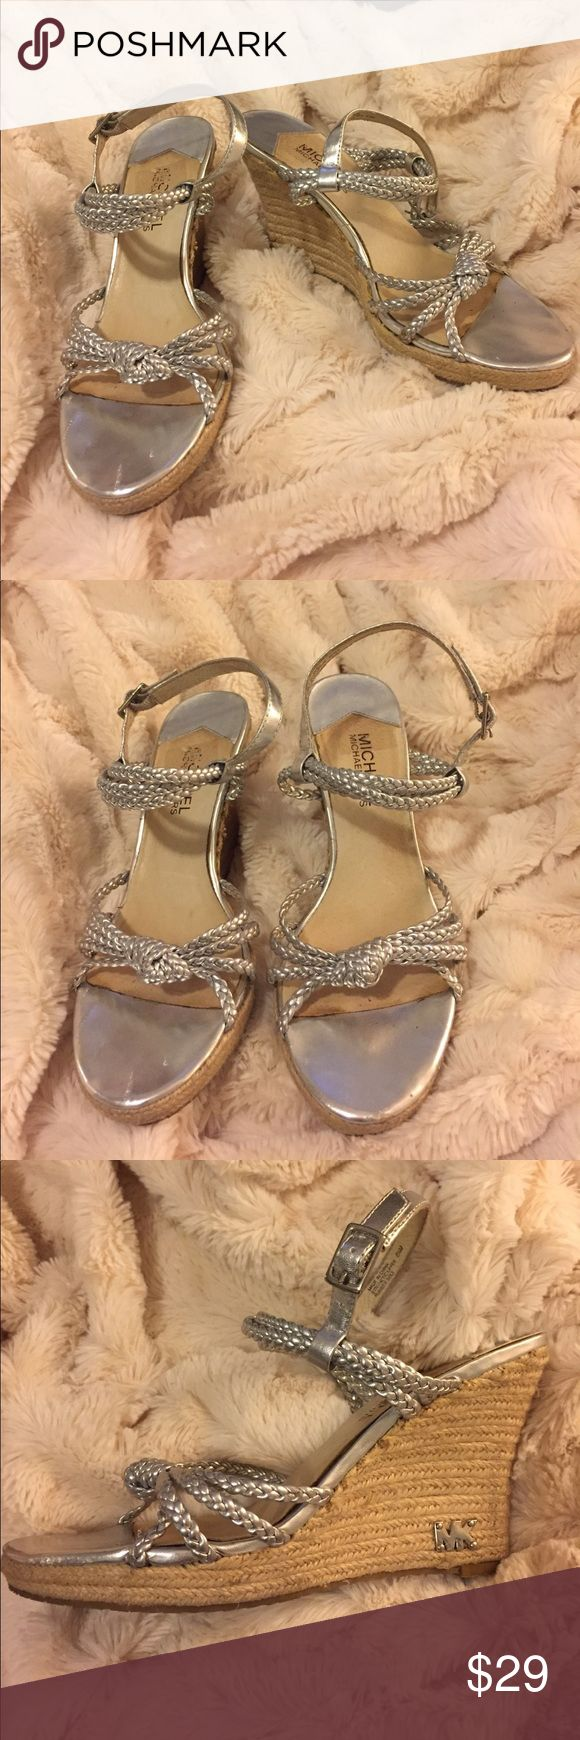 Michael Kors Silver Wedges Michael Kors Silver braided wedges. These shoes are great for any outing and perfect for weddings! These shoes have normal wear with slight scuffing and peeling as shown in photos. Size 6 ½ but seem to fit on the smaller side. 🌟Open to reasonable offers!🌟 Michael Kors Shoes Wedges